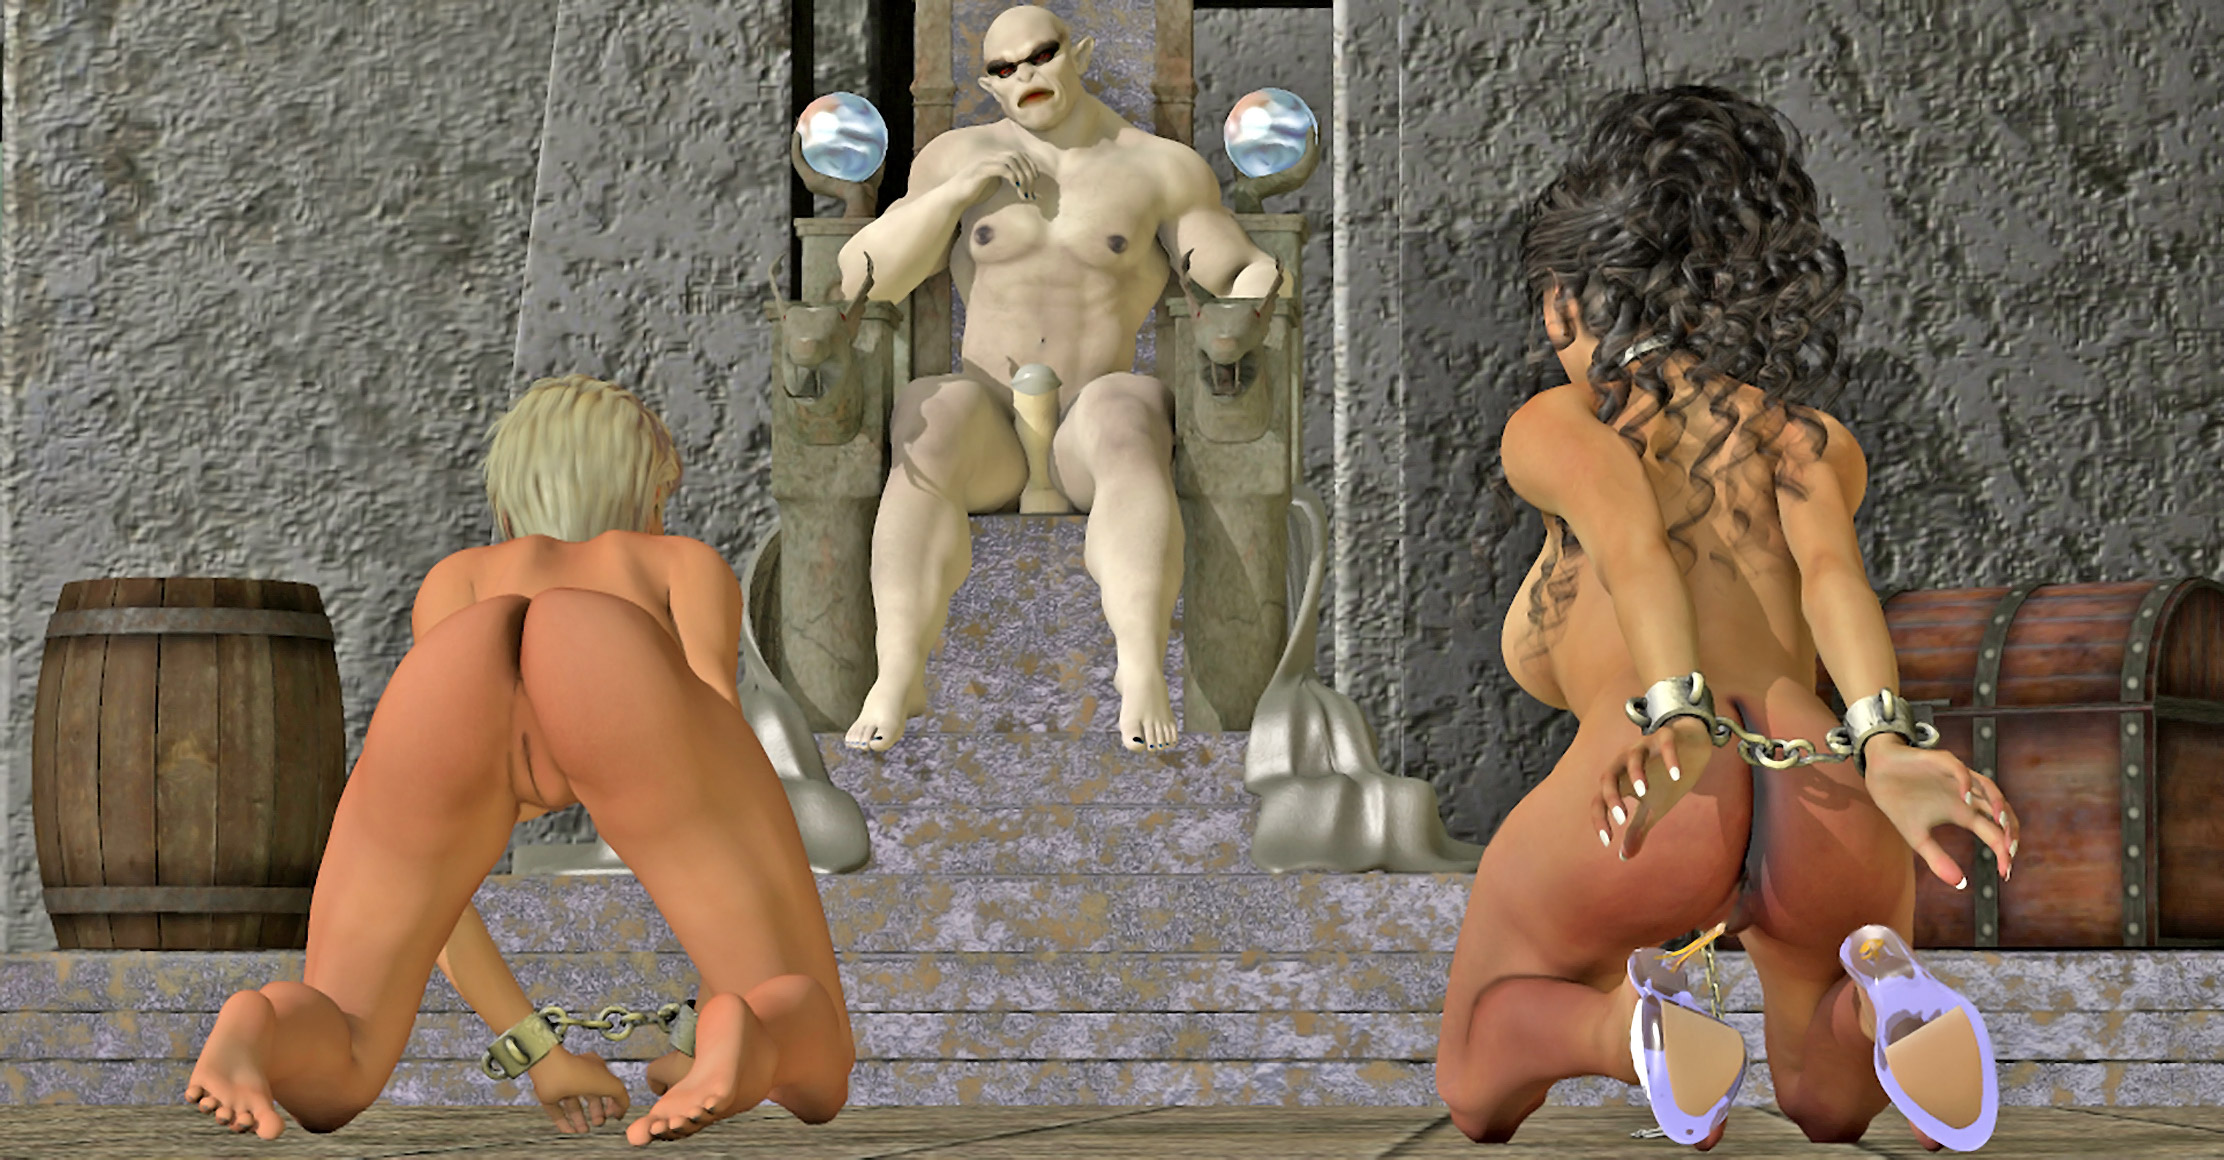 3d monster porn videos download hentia movie